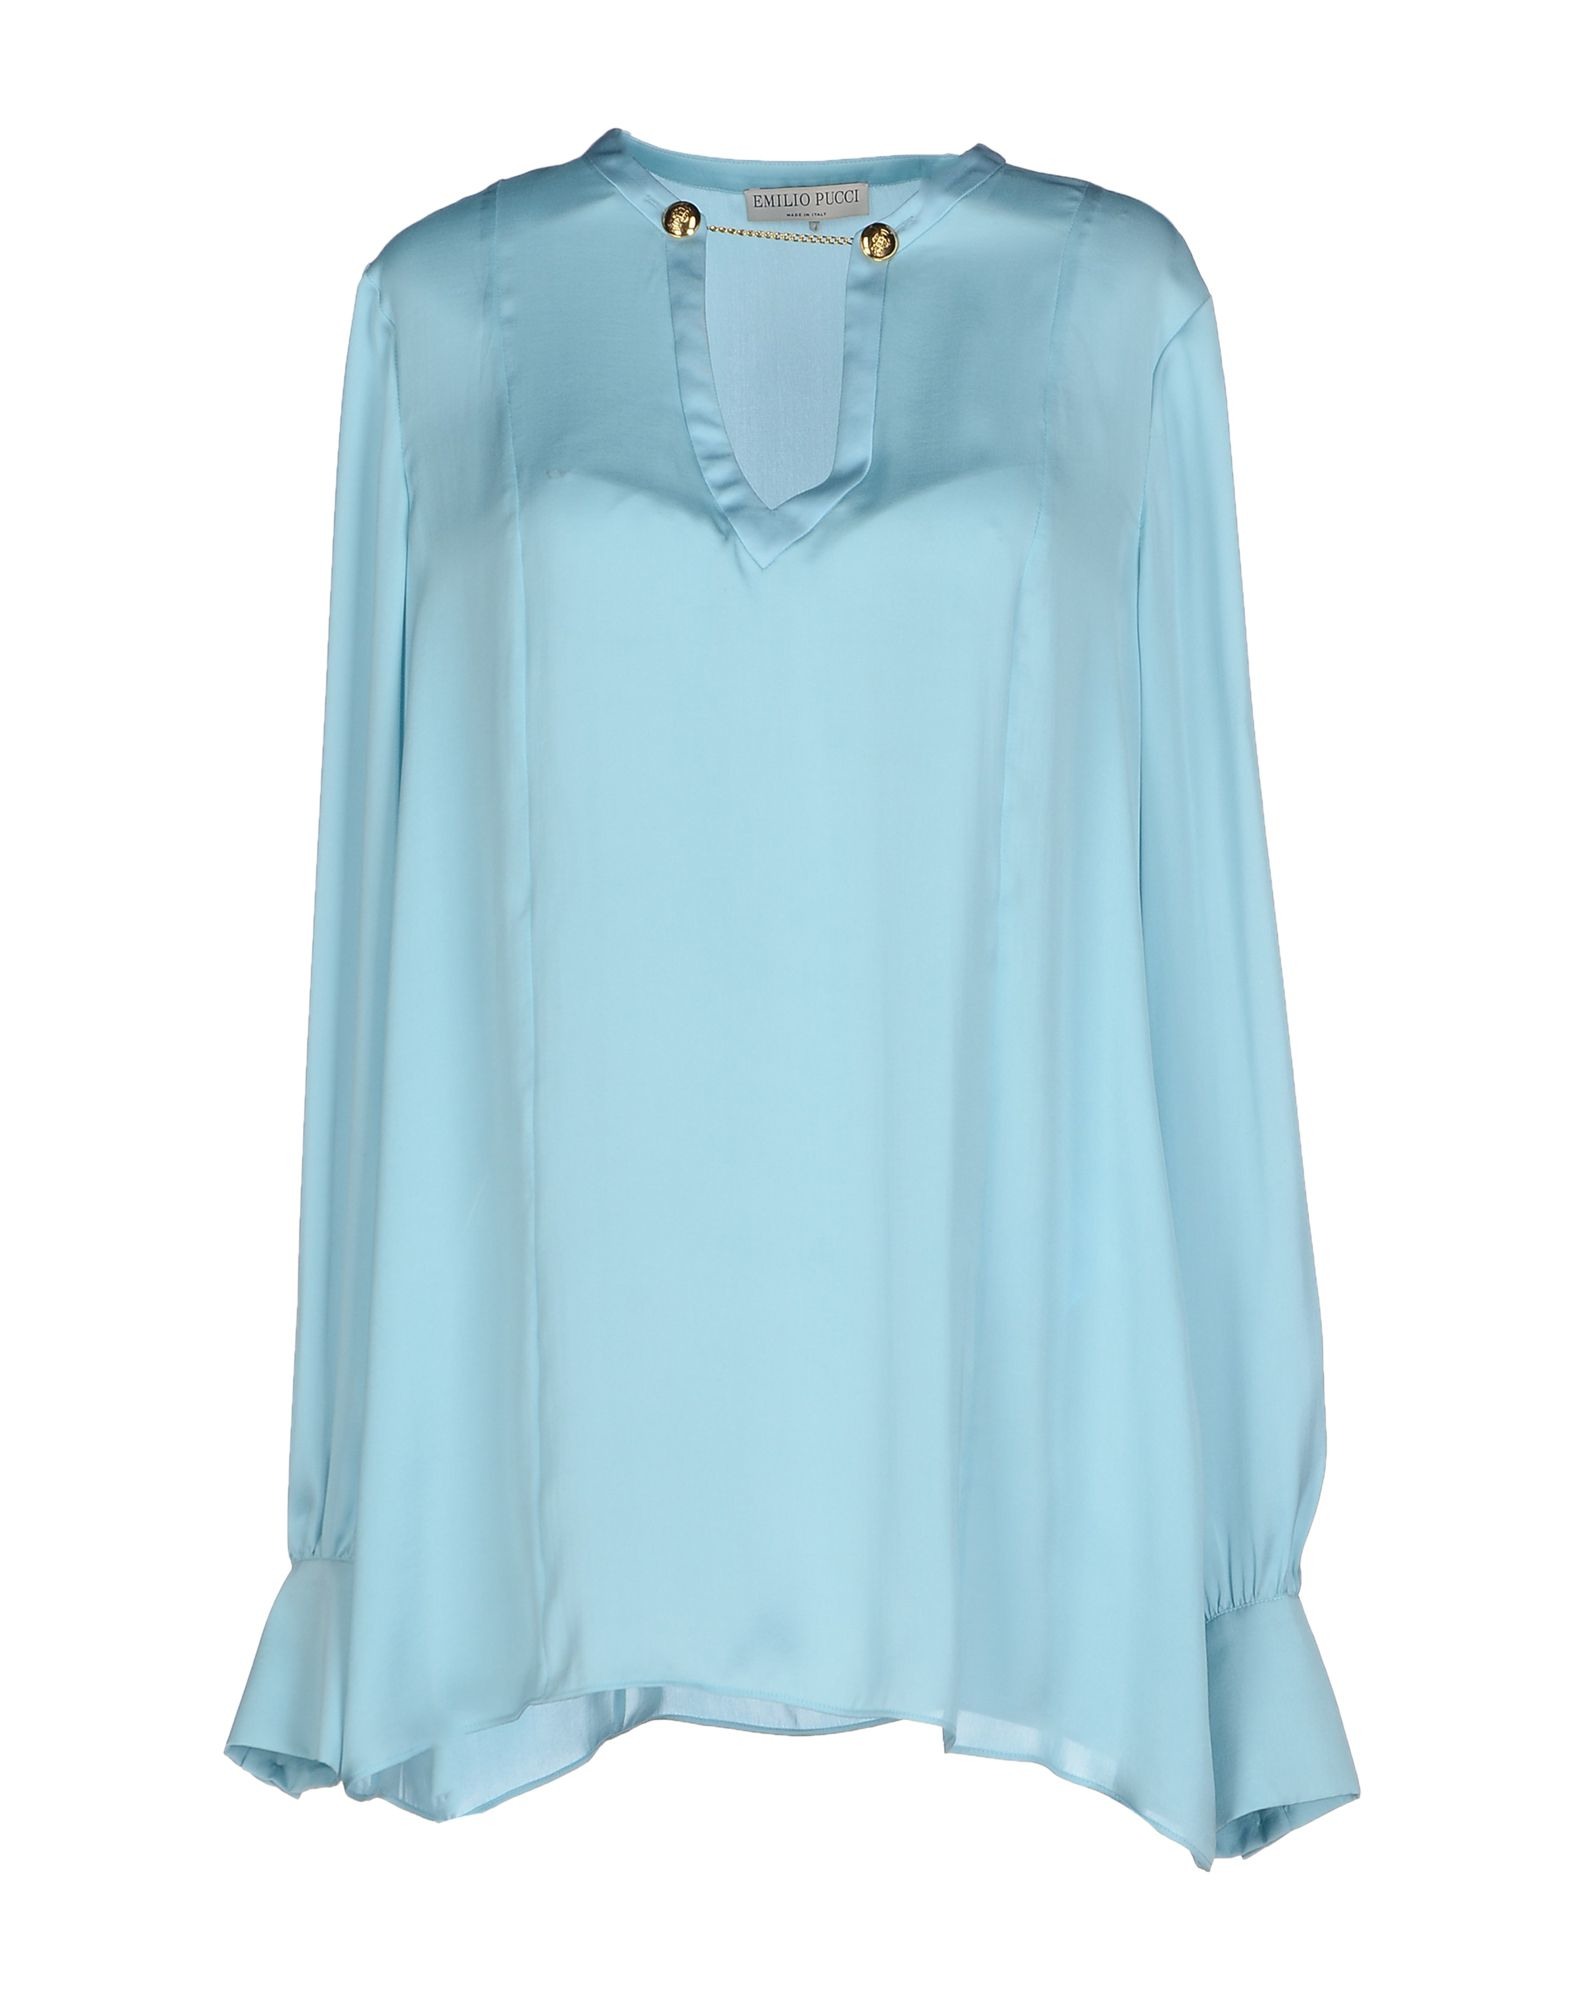 Sky Blue Womens Blouse 84